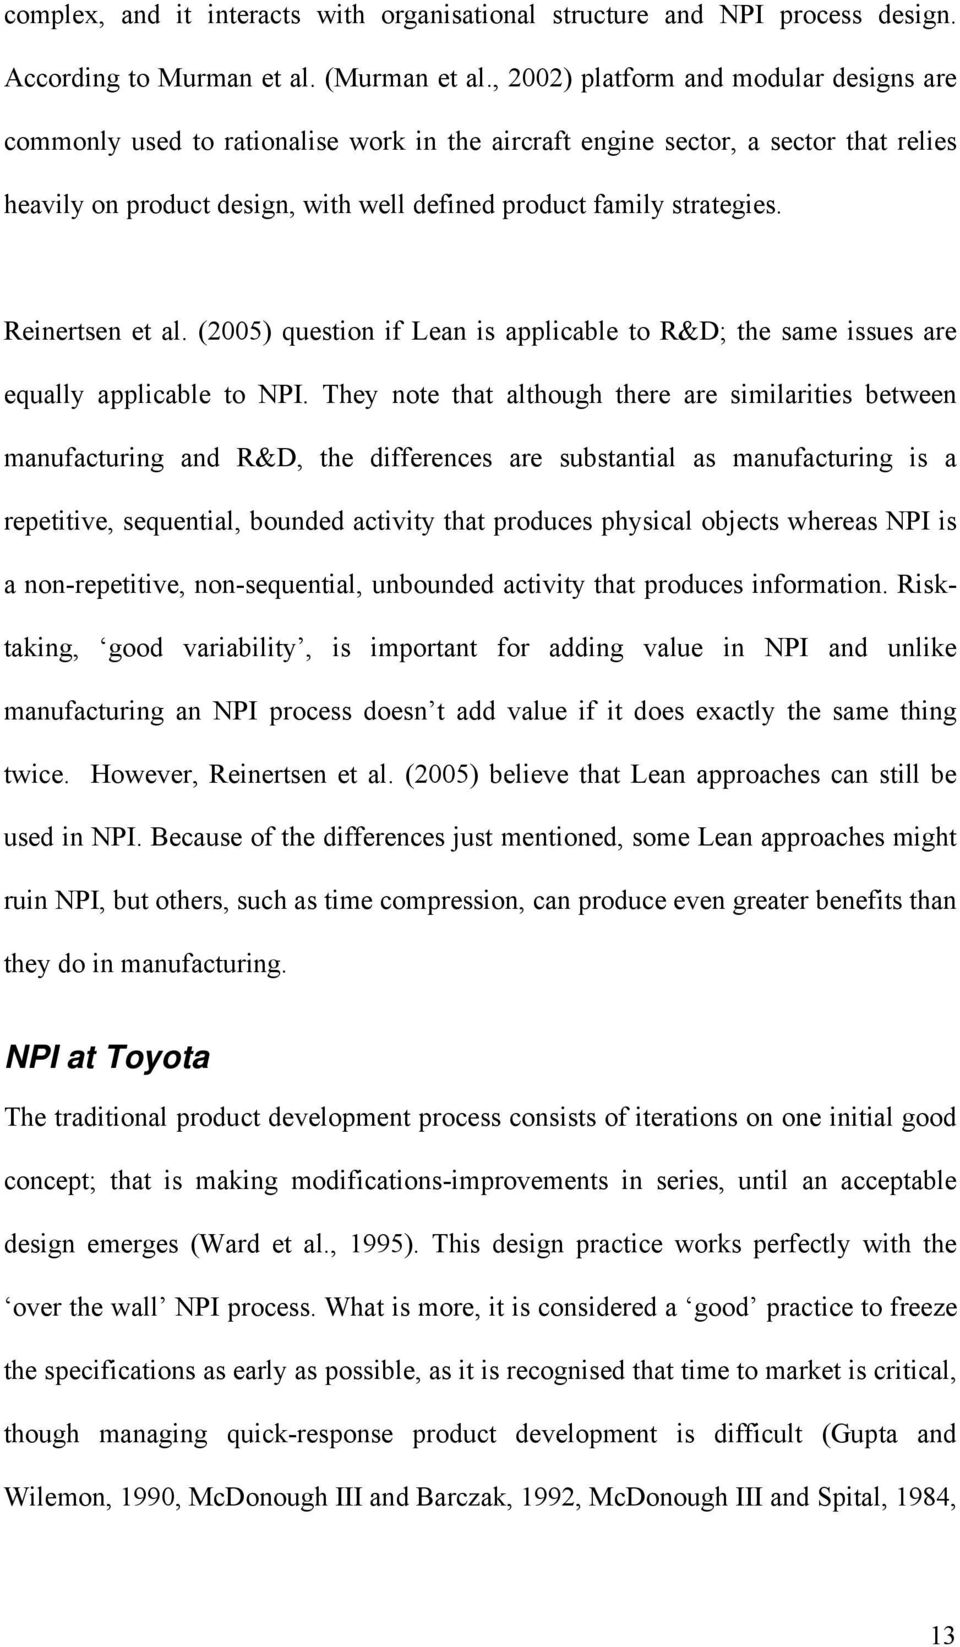 Reinertsen et al. (2005) question if Lean is applicable to R&D; the same issues are equally applicable to NPI.